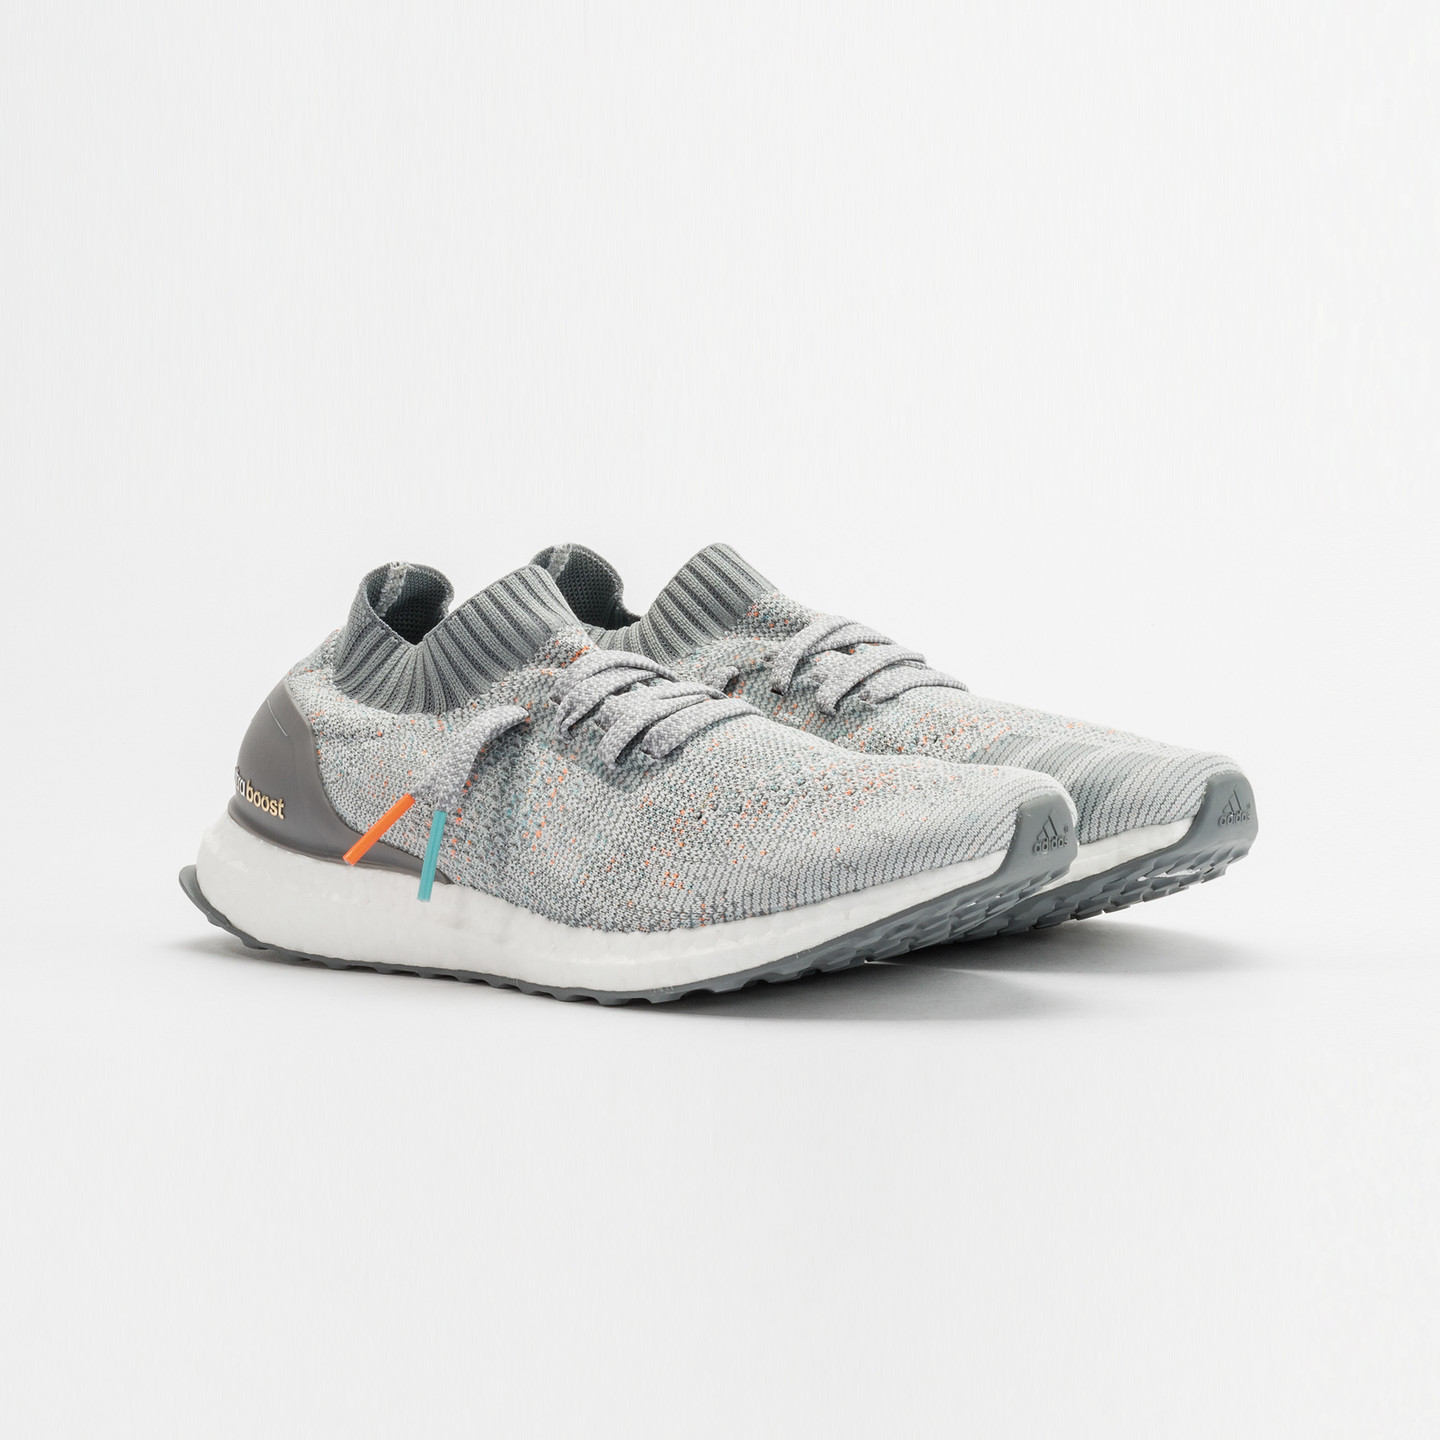 Adidas Ultra Boost Uncaged 'Miami Dolphins' Clear Grey / Mid Grey / Orange / Aqua BB4489-46.66